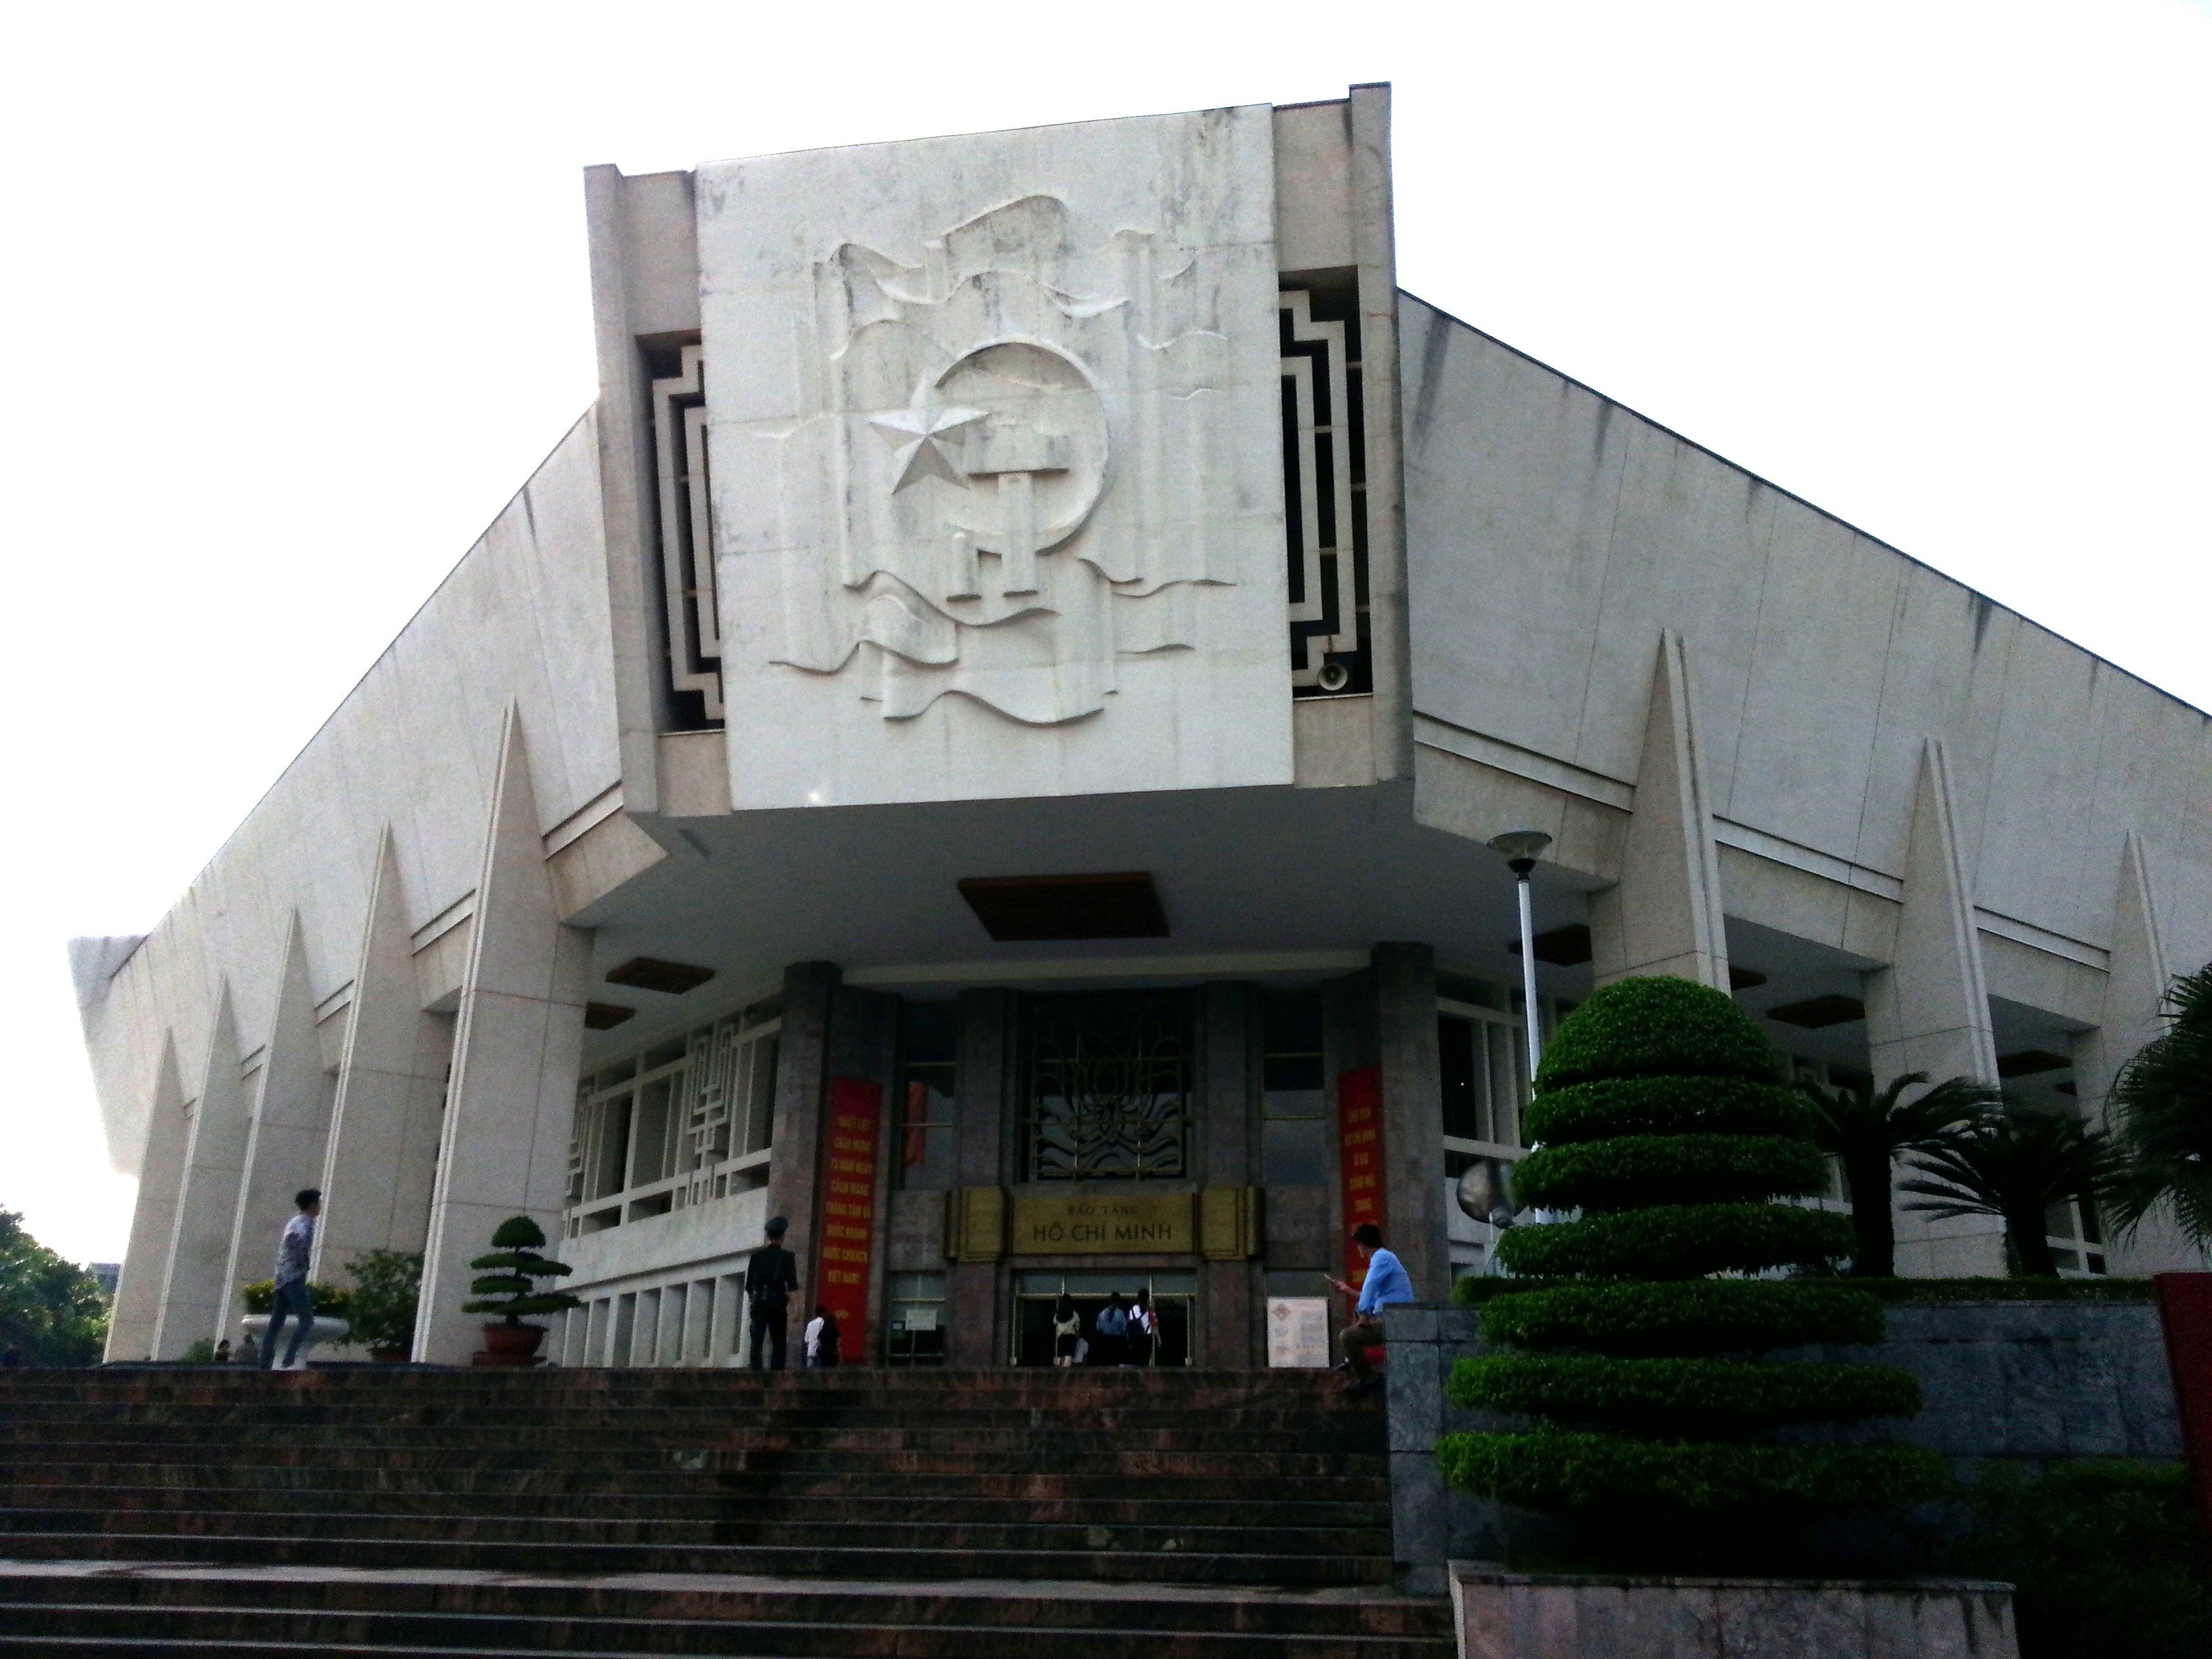 The Ho Chi Minh Museum is in a Soviet style building